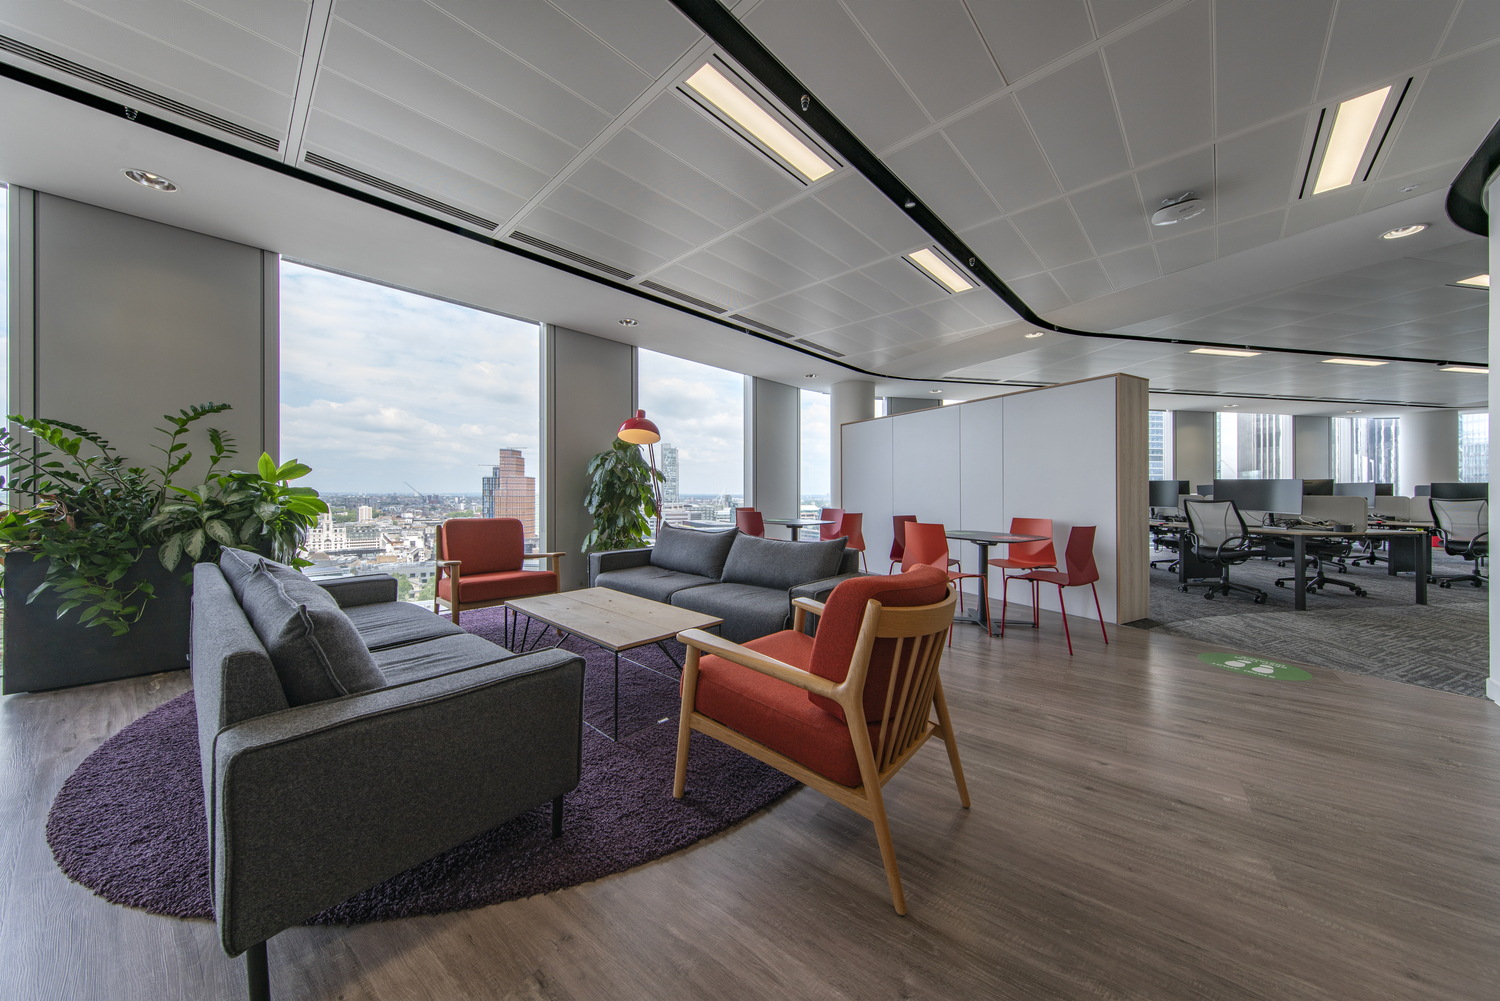 Equifax agile office relocation